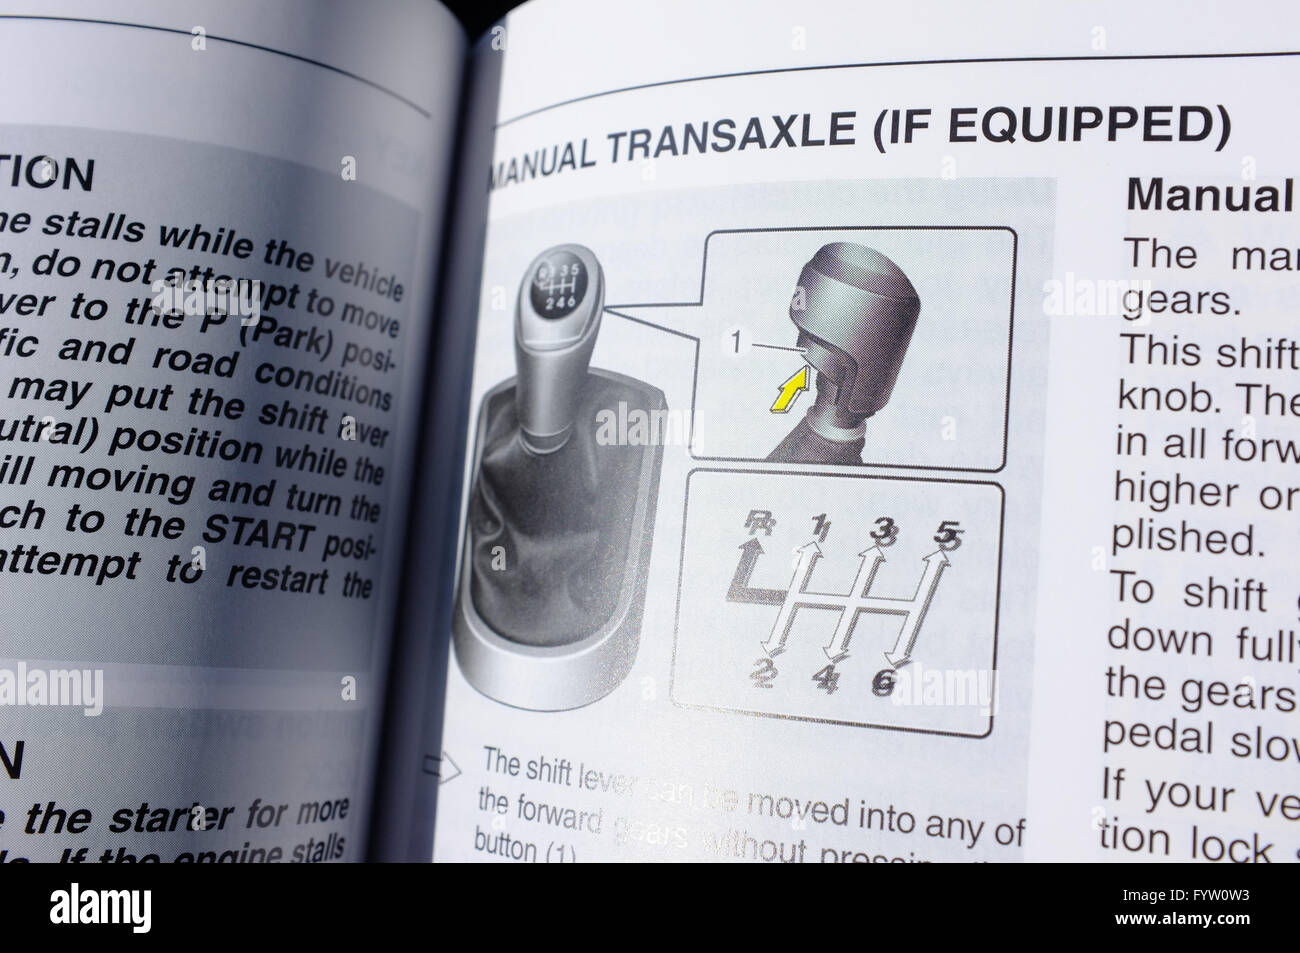 Hyundai Owners Manual Stock Photos Accent Schematic A Transaxle Illustraionin Image